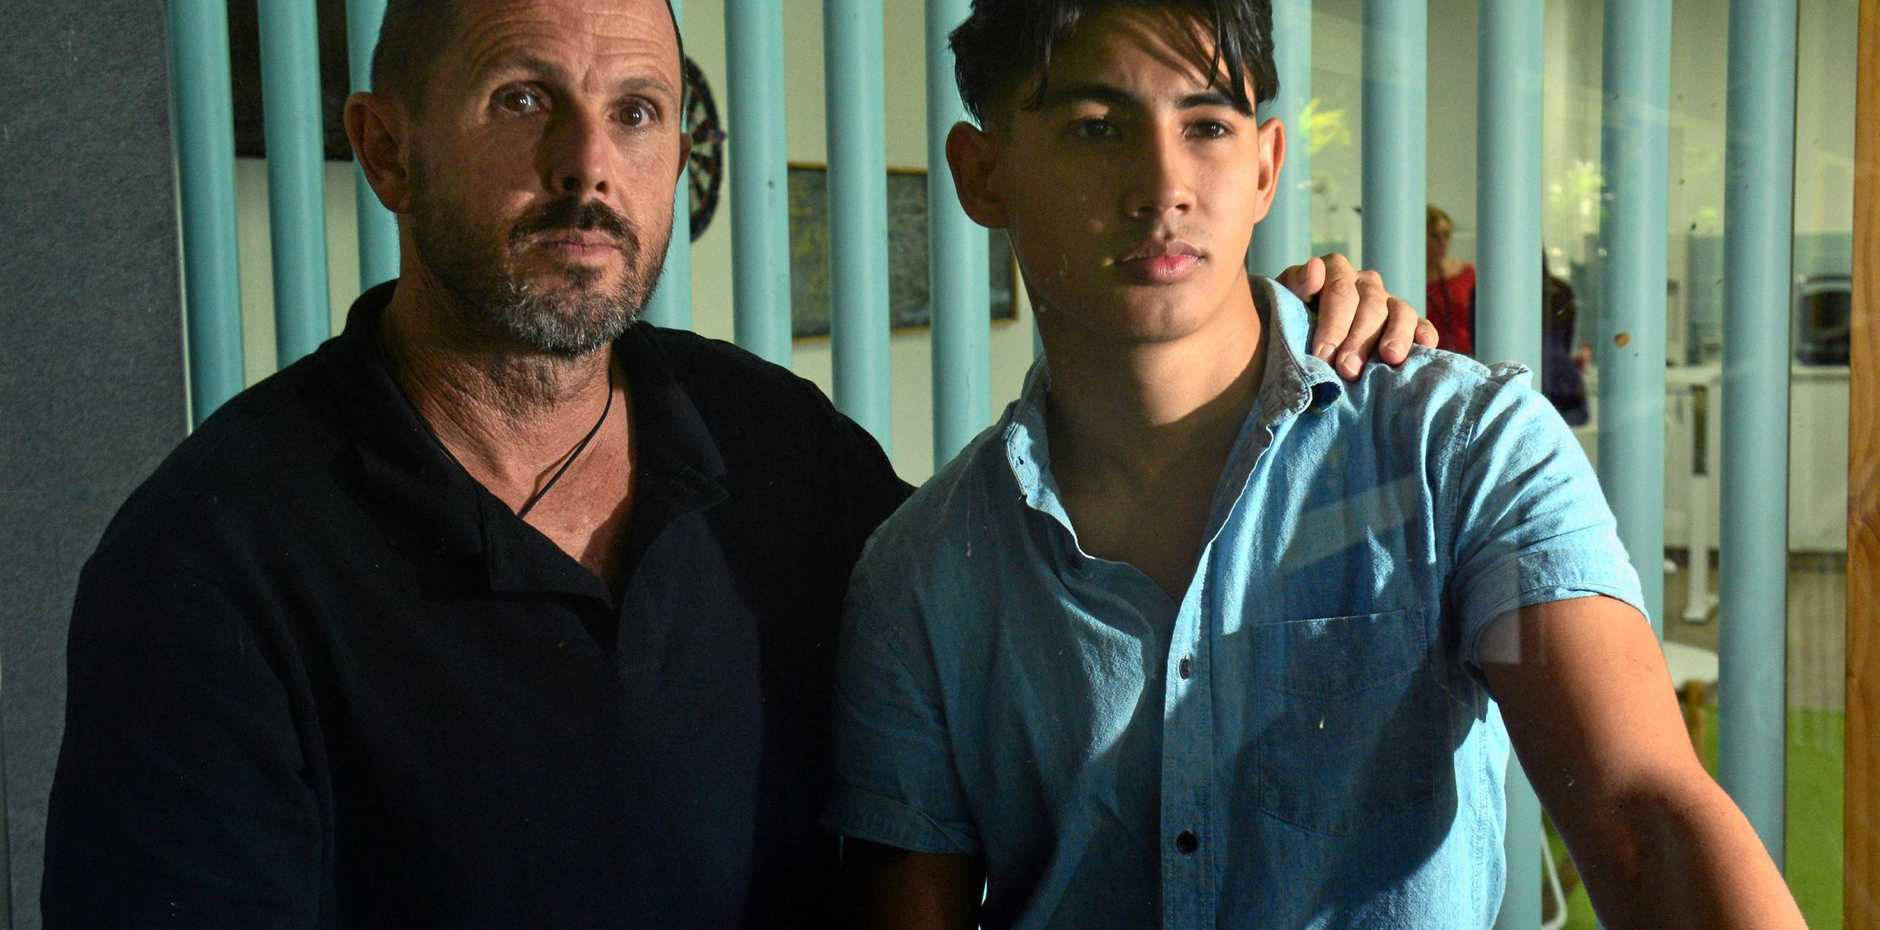 Peter Mulcahy and his son Taon Mulcahy, who was punched three to four times in Noosa nightclub the Rolling Rock, suffering multiple facial fractures. Two weeks after the attack police still have no suspects and the family fears the man will walk free.